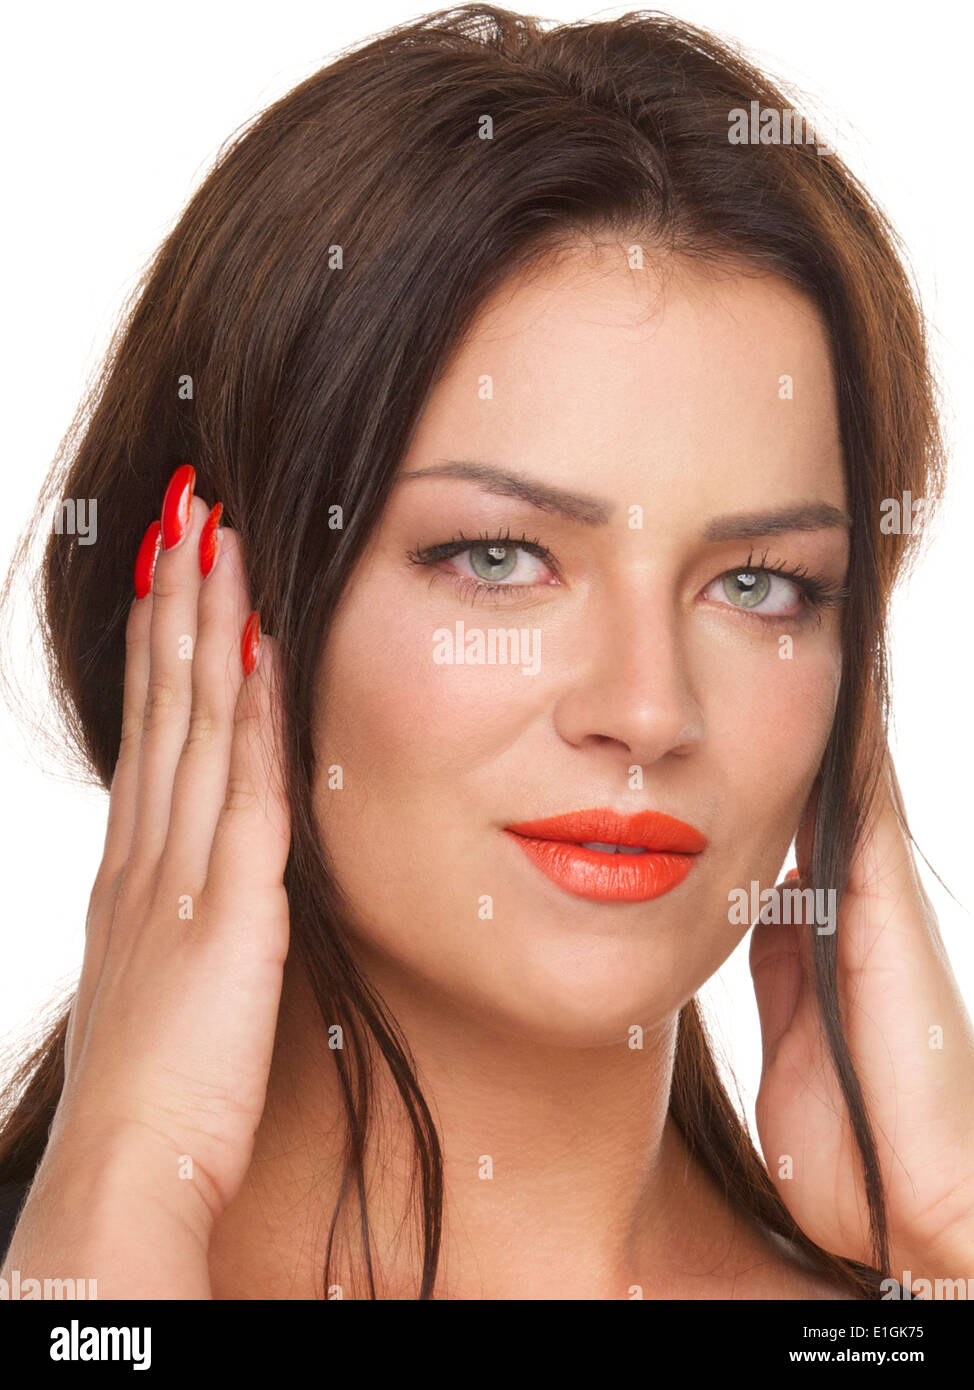 Pretty girl with red lipstick, ears covered with hands, three wise monkeys series. - Stock Image